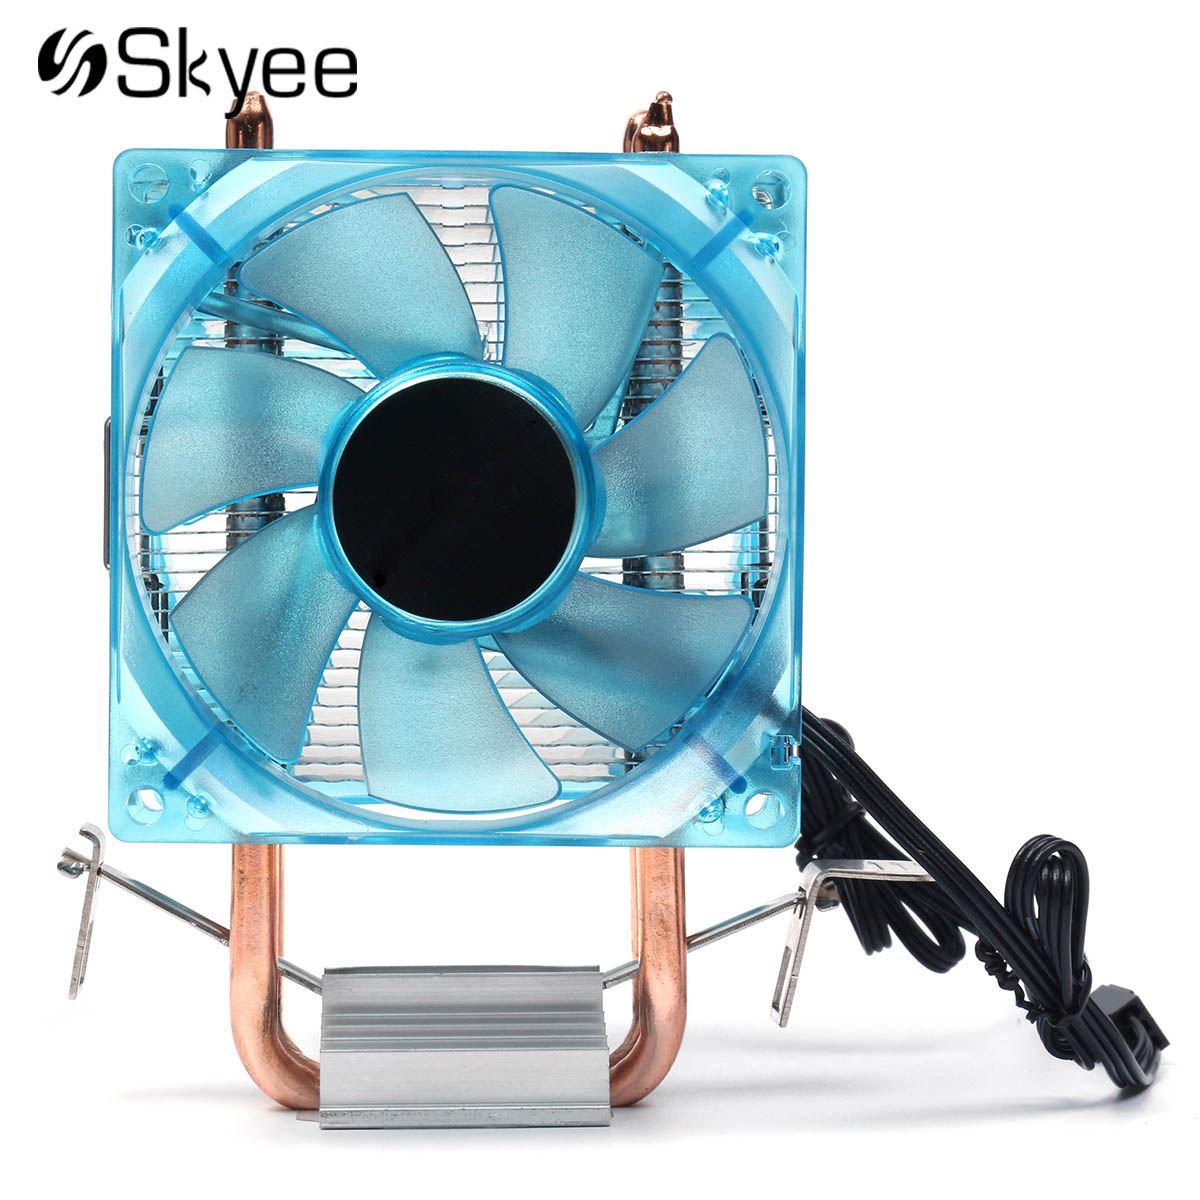 2018 LED CPU Cooling Fan 90mm Dual Copper Pipe Aluminum Heatsink Cooler Cooling Fan for AMD FM1 AM2 + AM3 +Intel 775 1155 1156 quiet cooled fan core led cpu cooler cooling fan cooler heatsink for intel socket lga1156 1155 775 amd am3 high quality